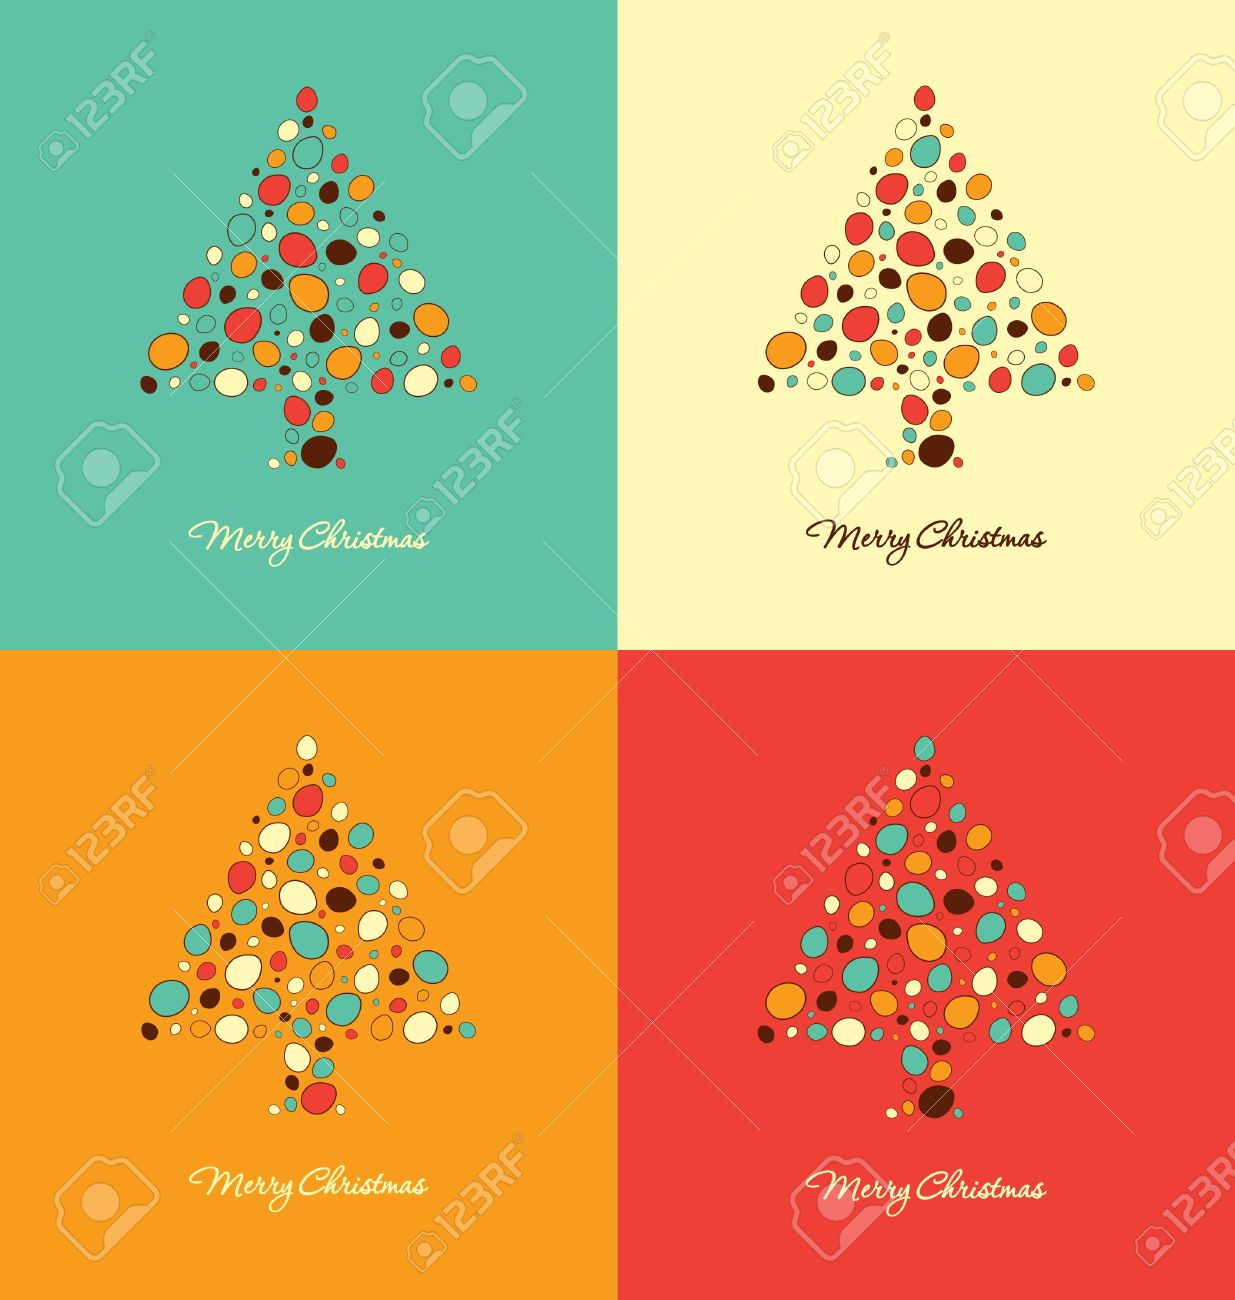 christmas card design templates - Free Photo Christmas Card Templates